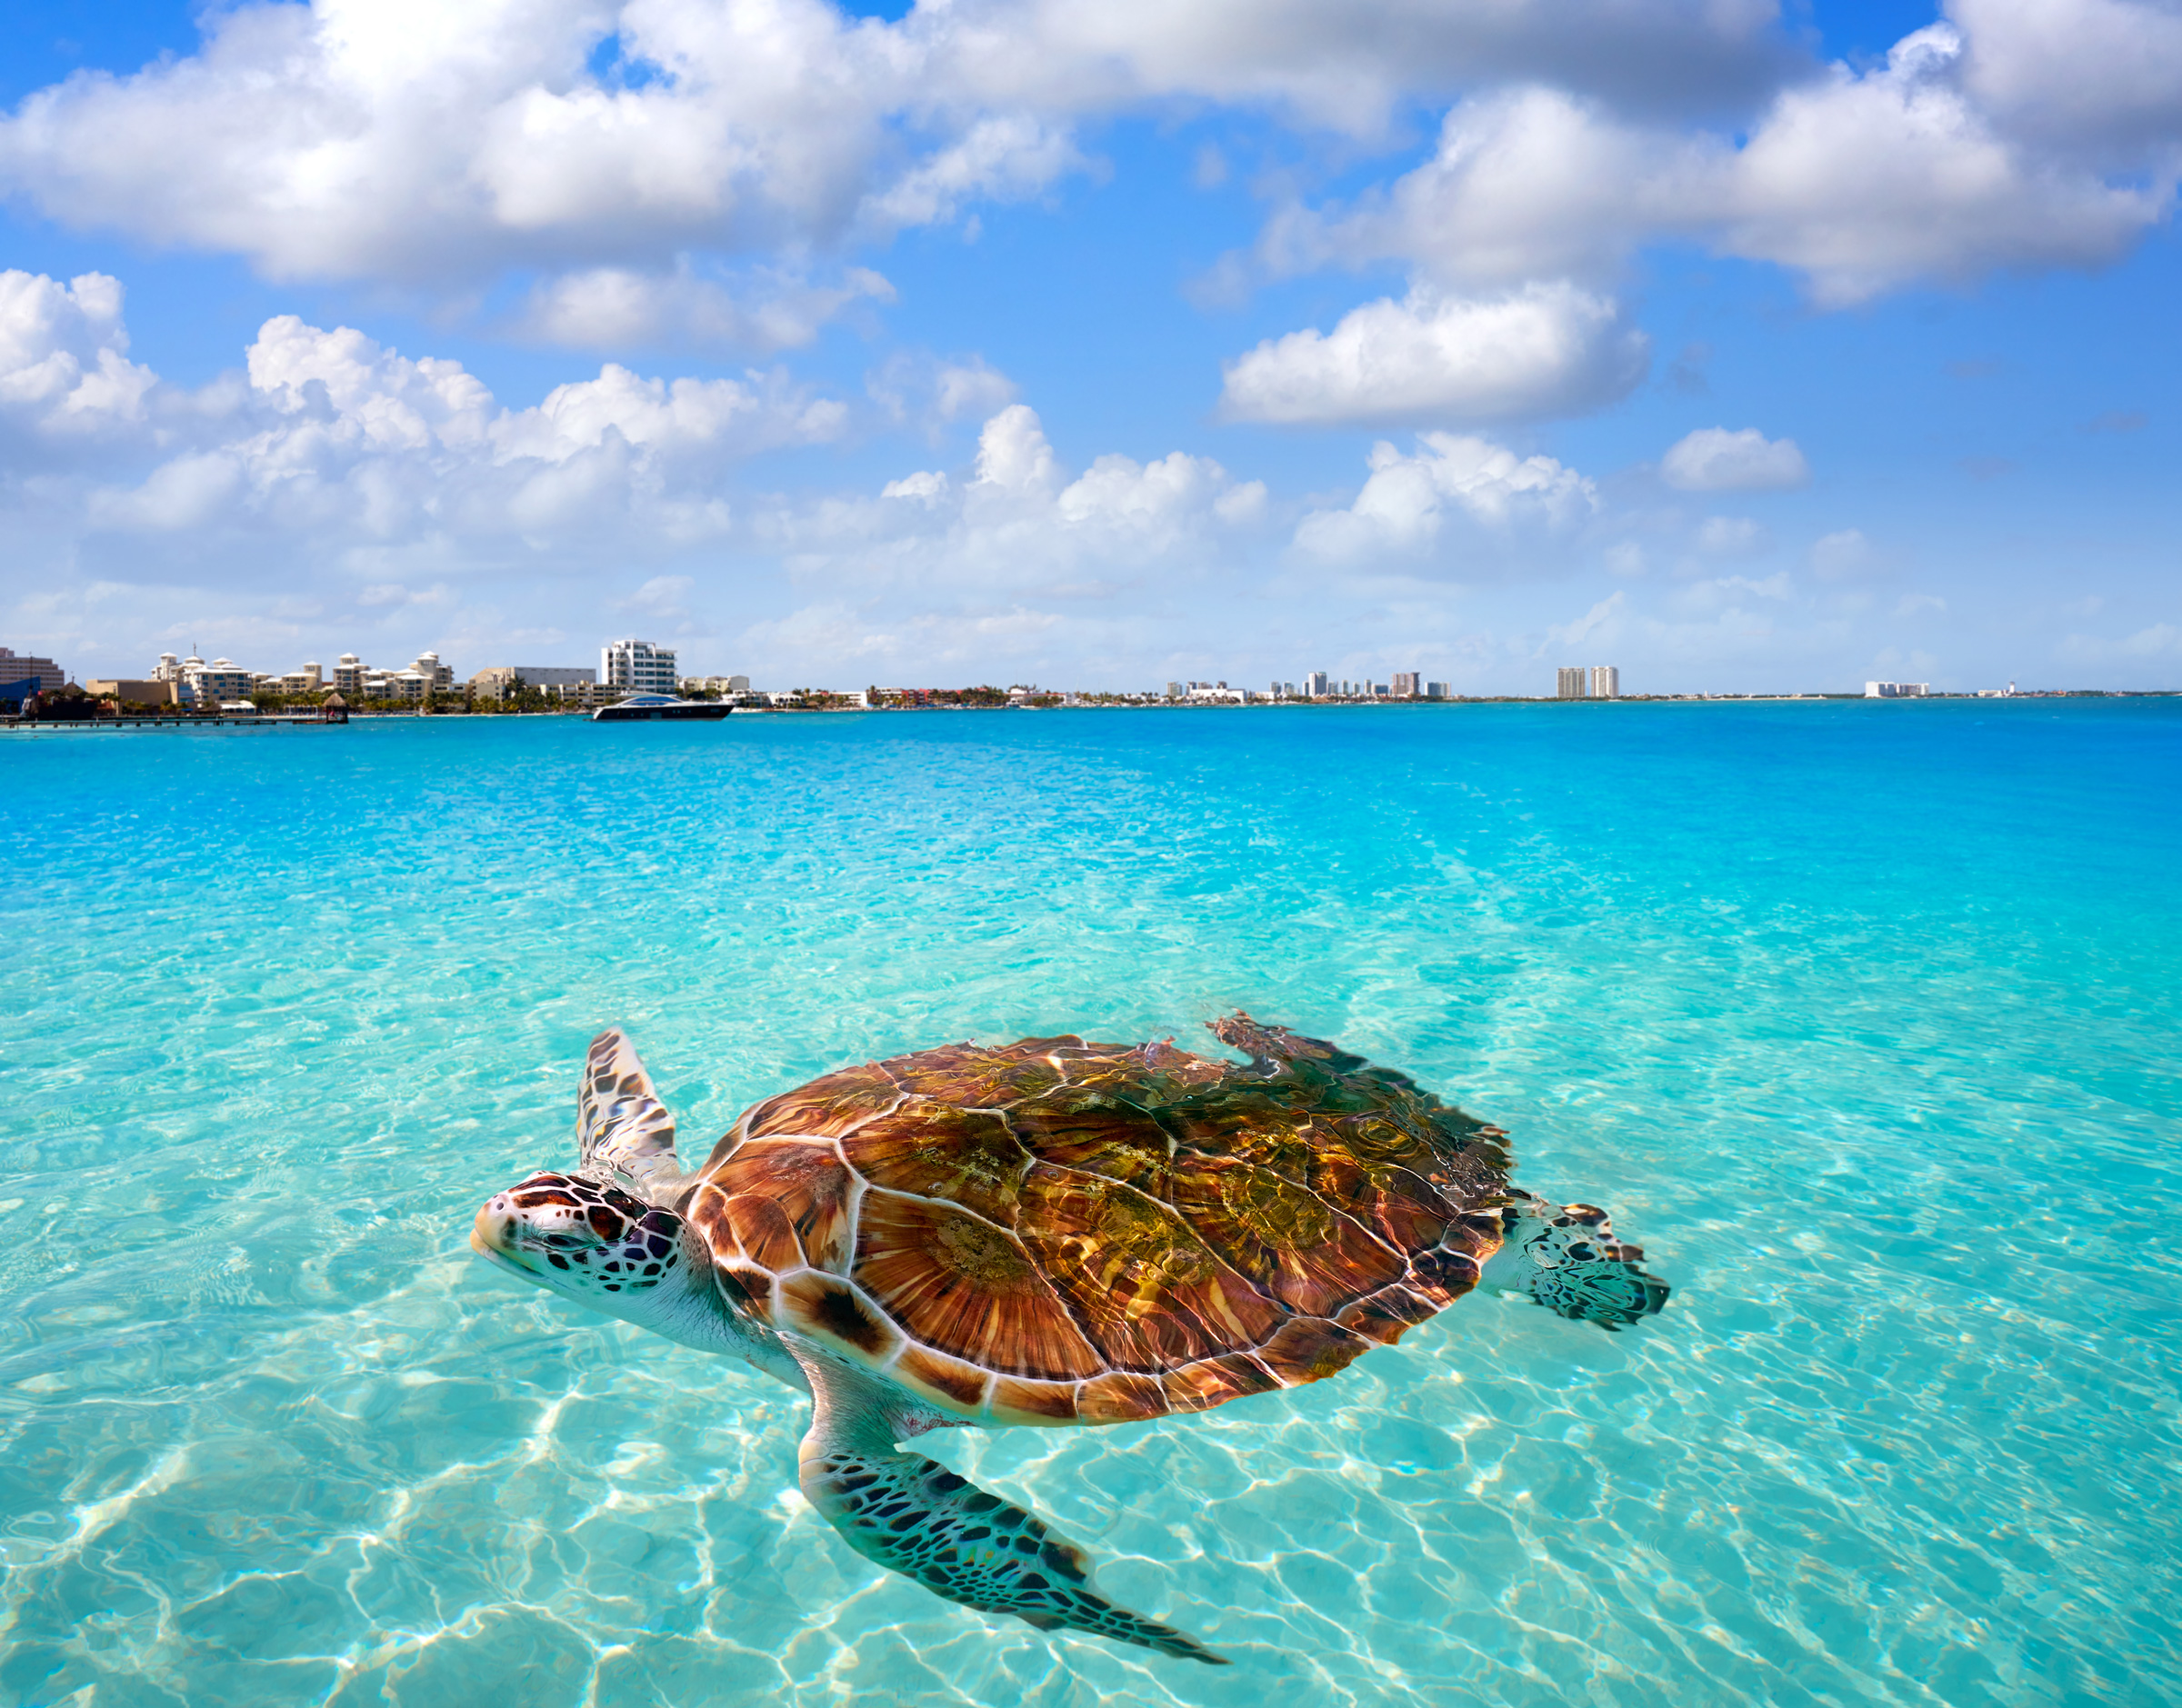 beach-tortugas-travel-in-Park-Royal-Cancun